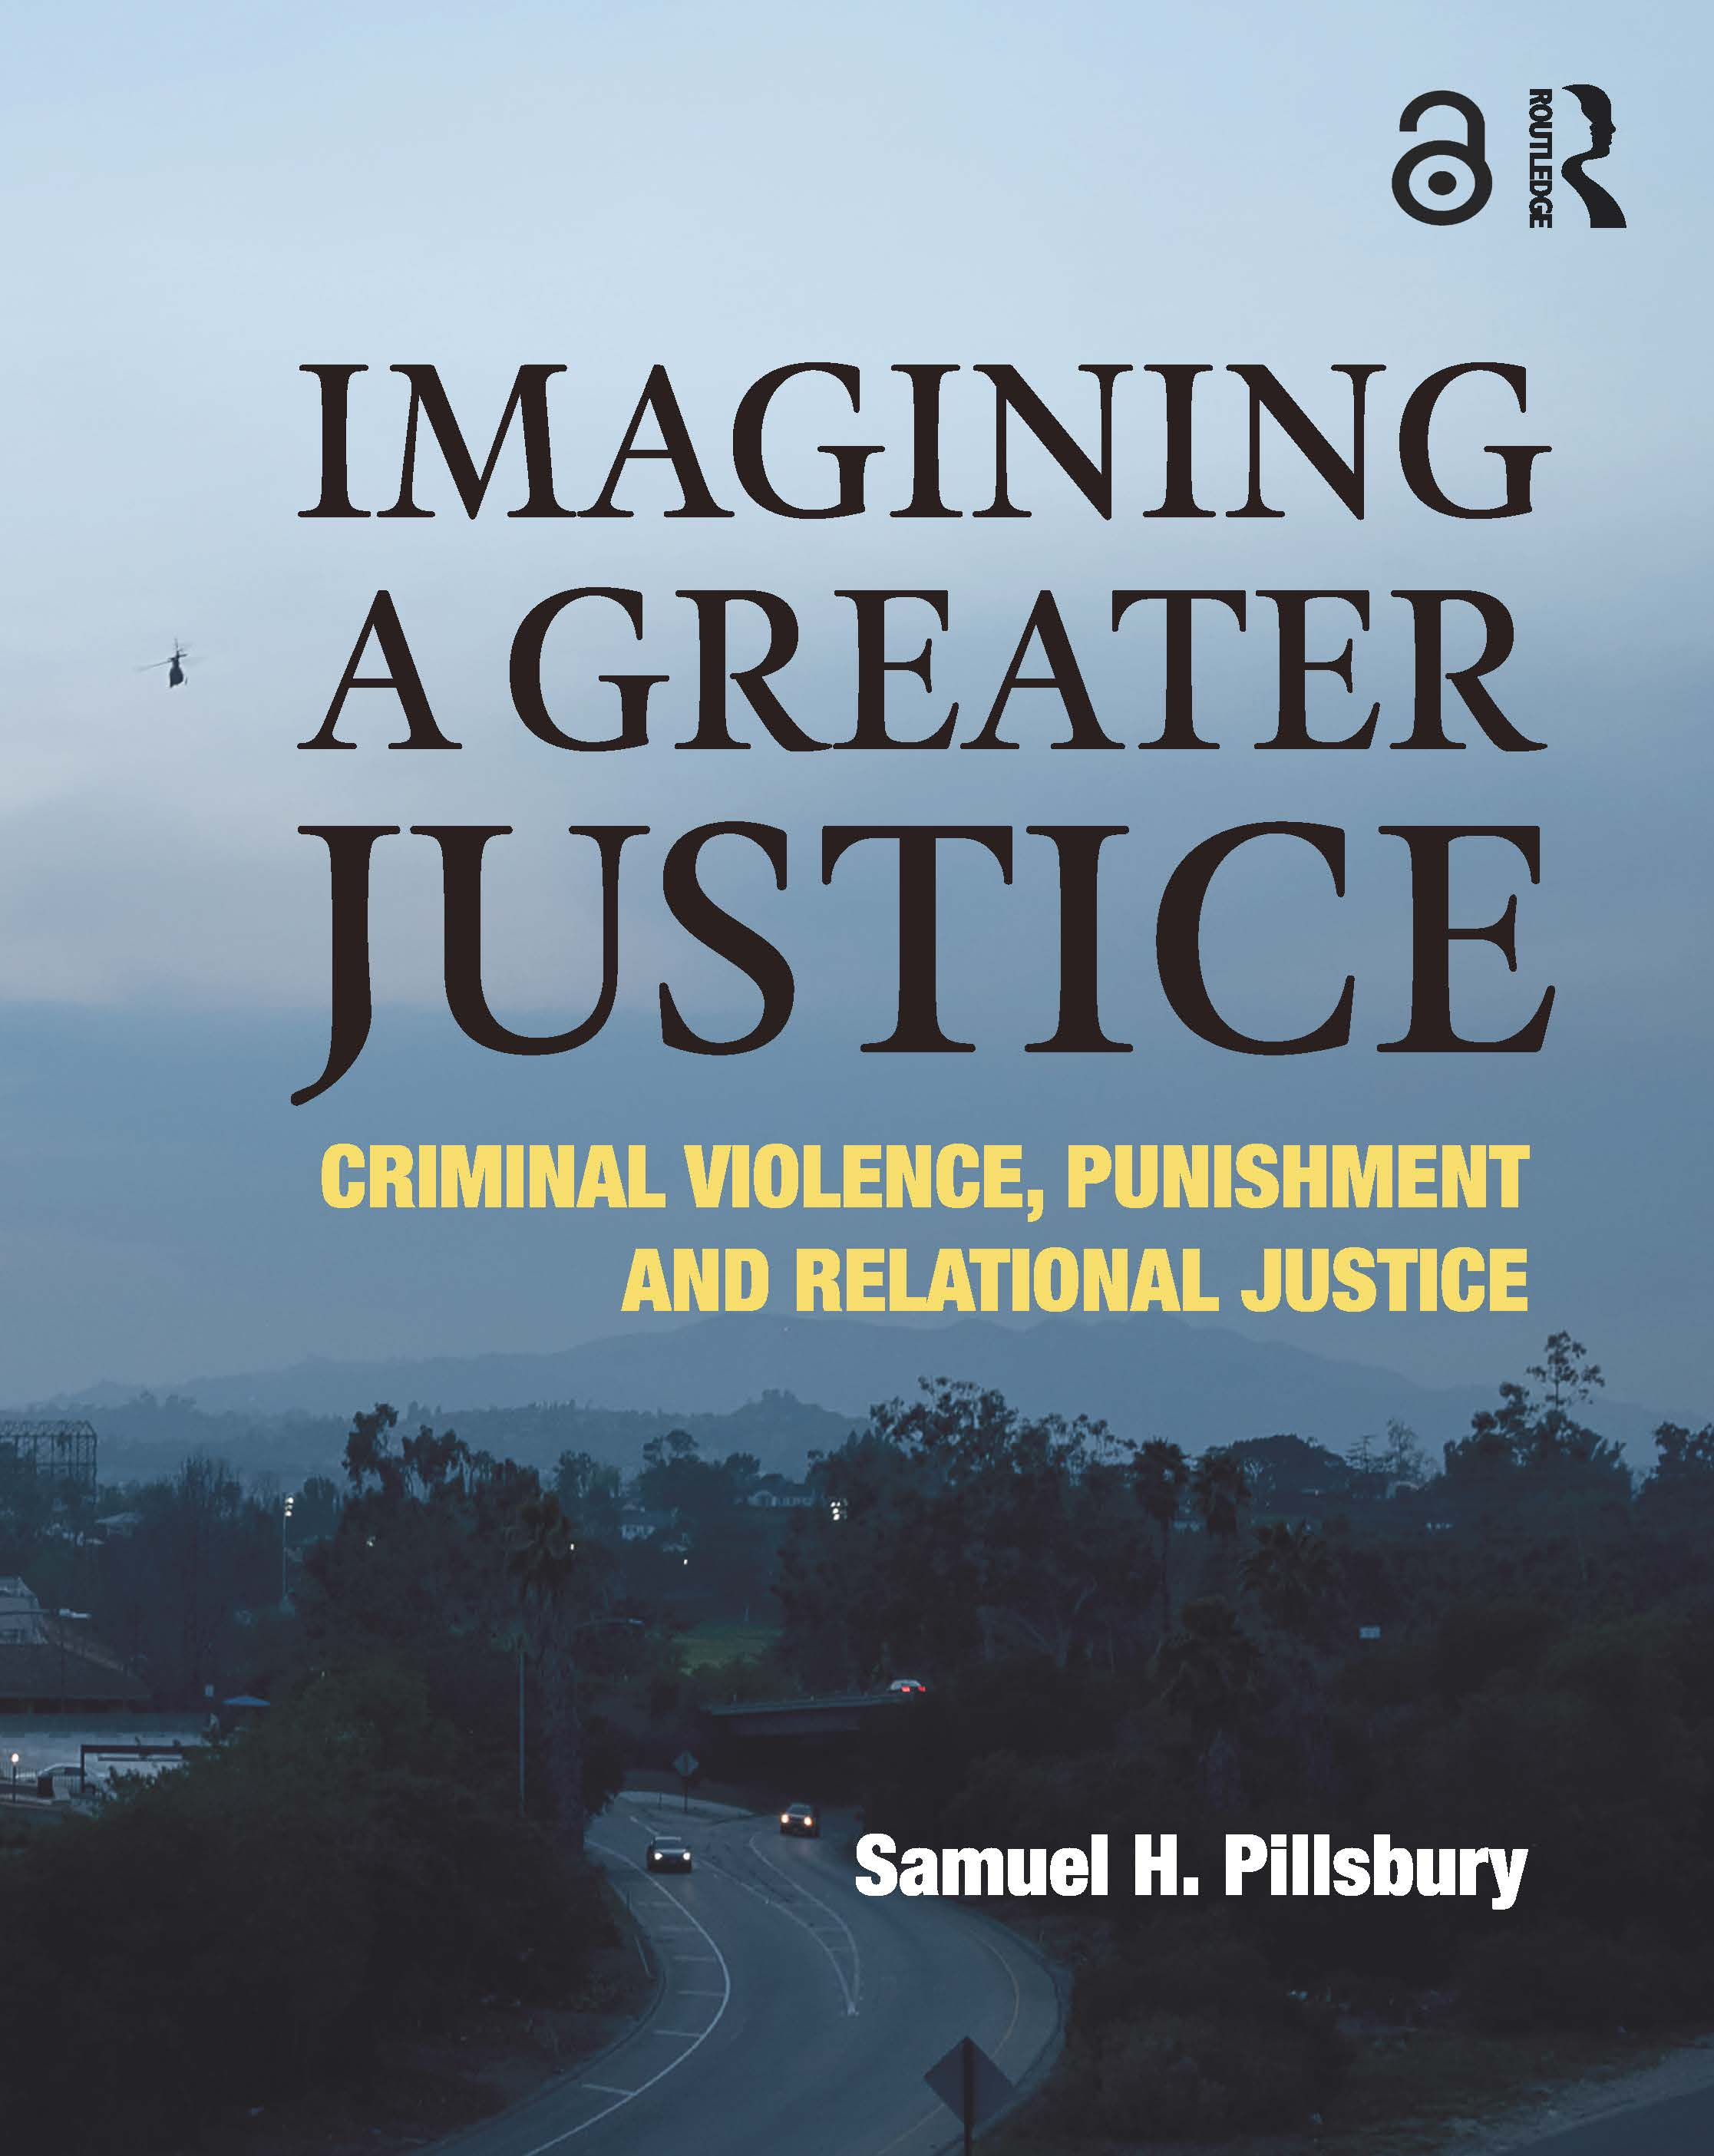 Imagining a Greater Justice: Criminal Violence, Punishment, and Relational Healing book cover